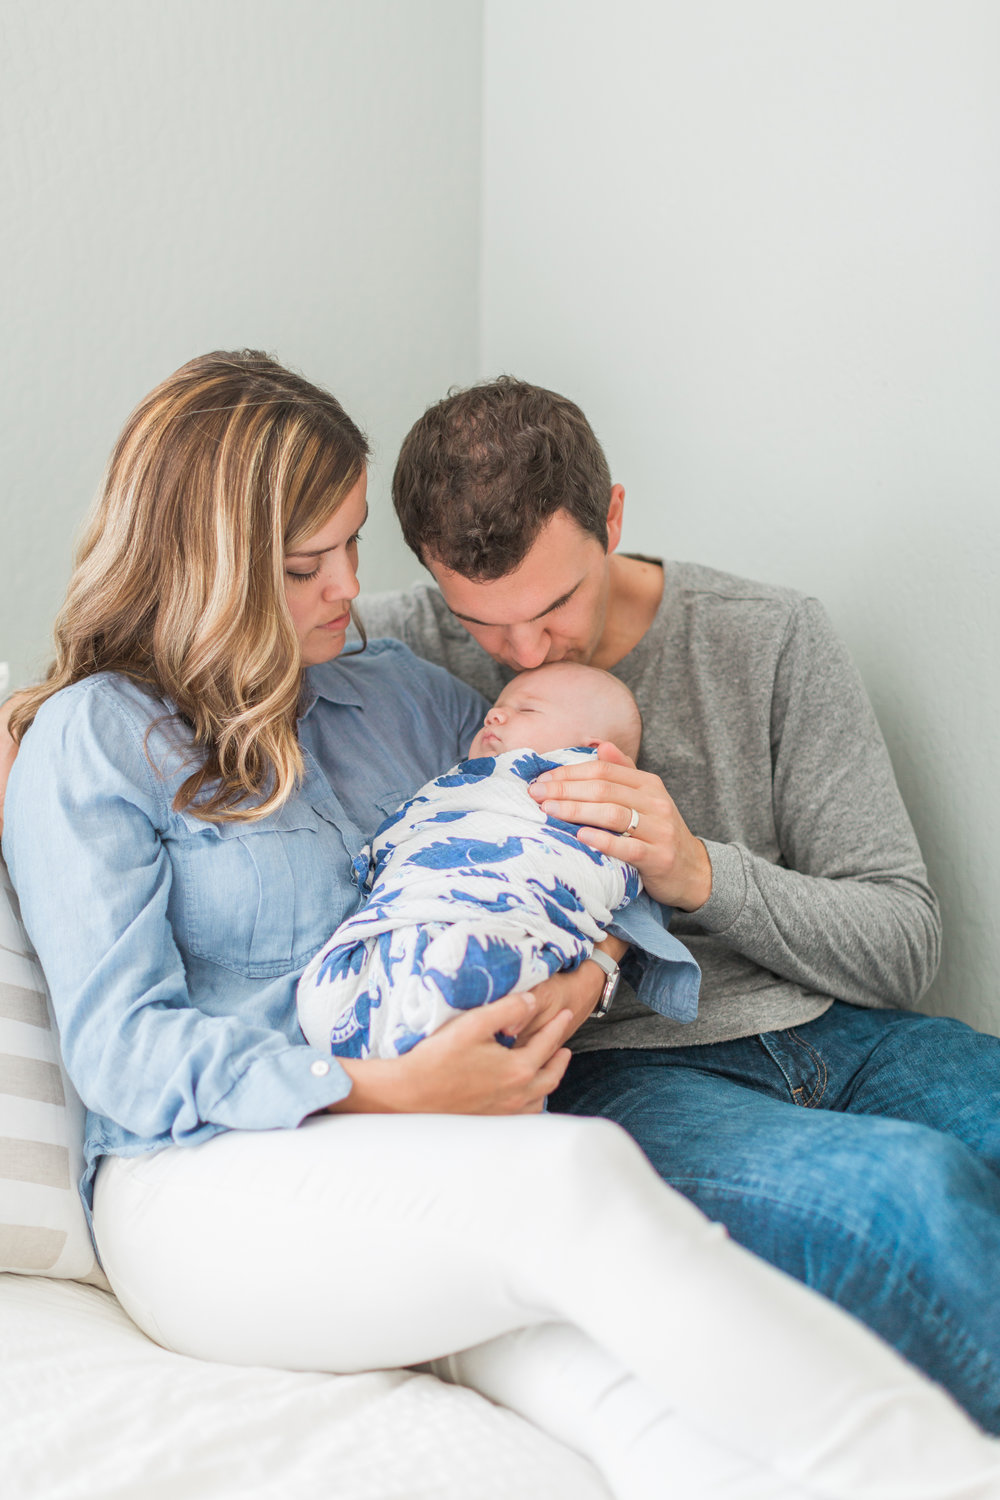 oakland-newborn-family-pictures-5.jpg